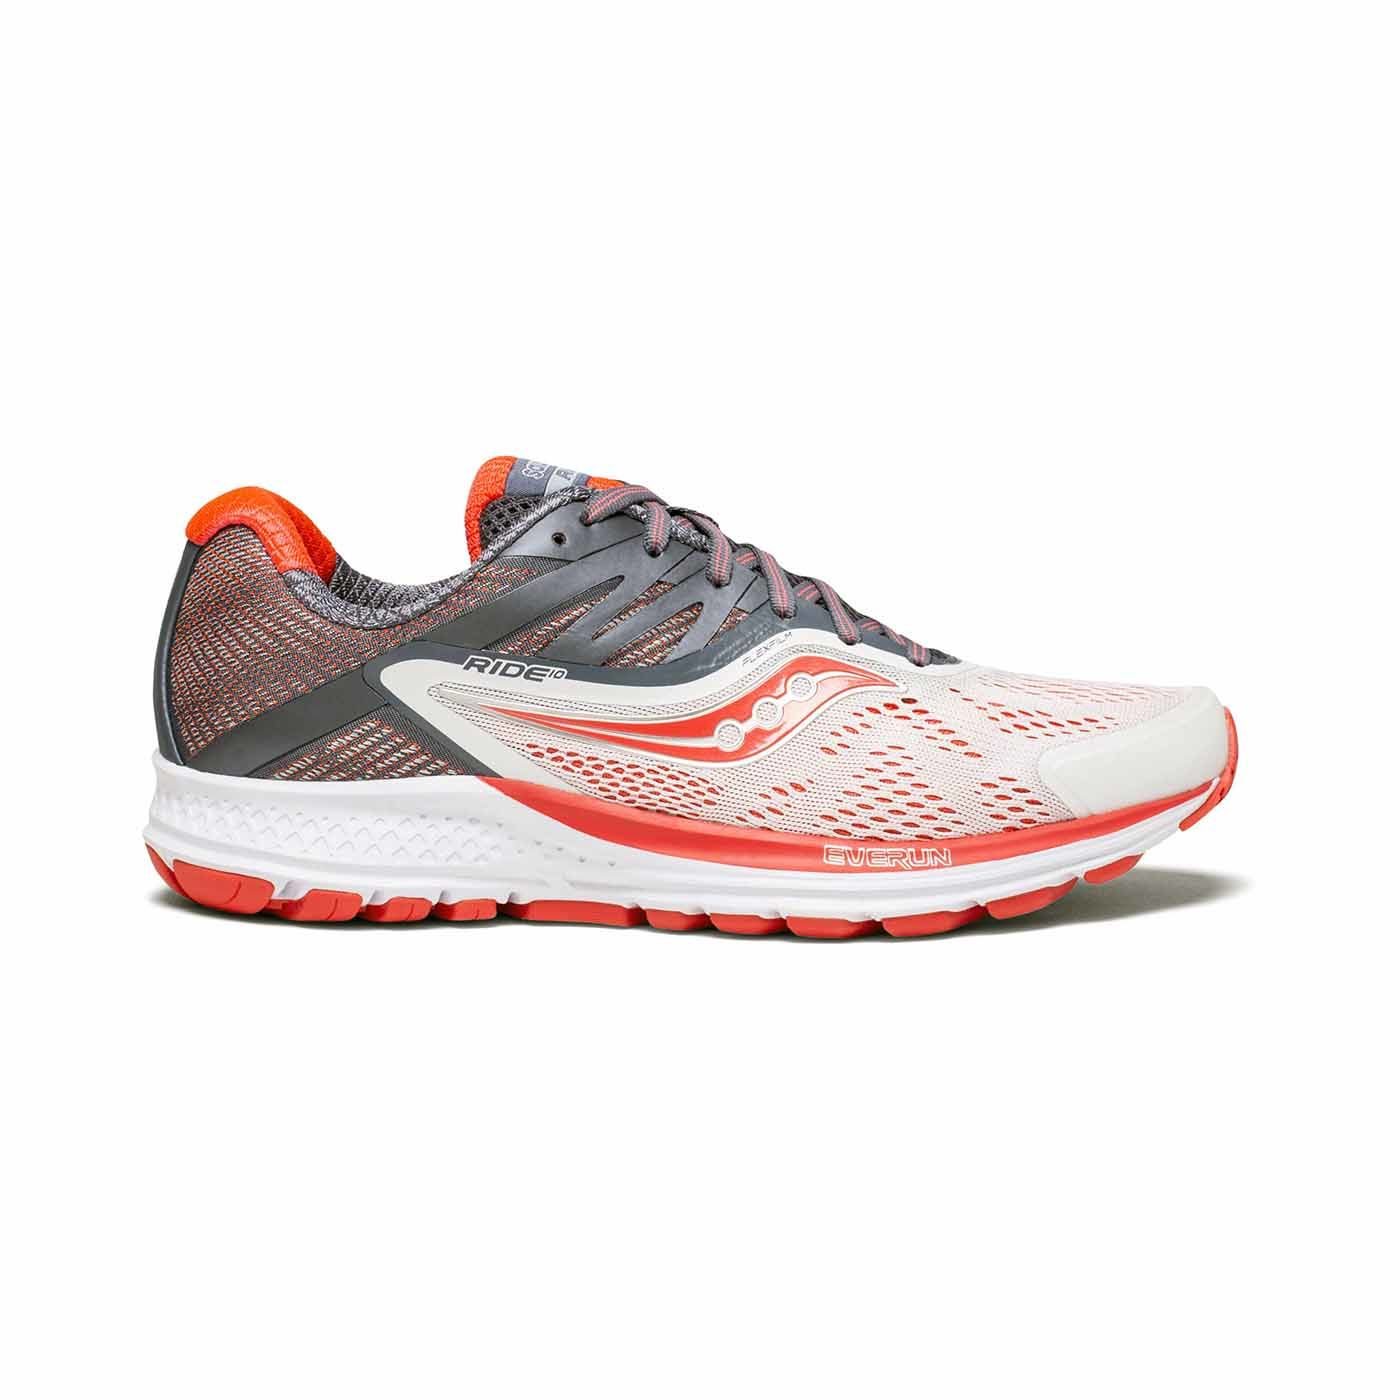 Saucony Lady Ride 10 in Weiß Rot